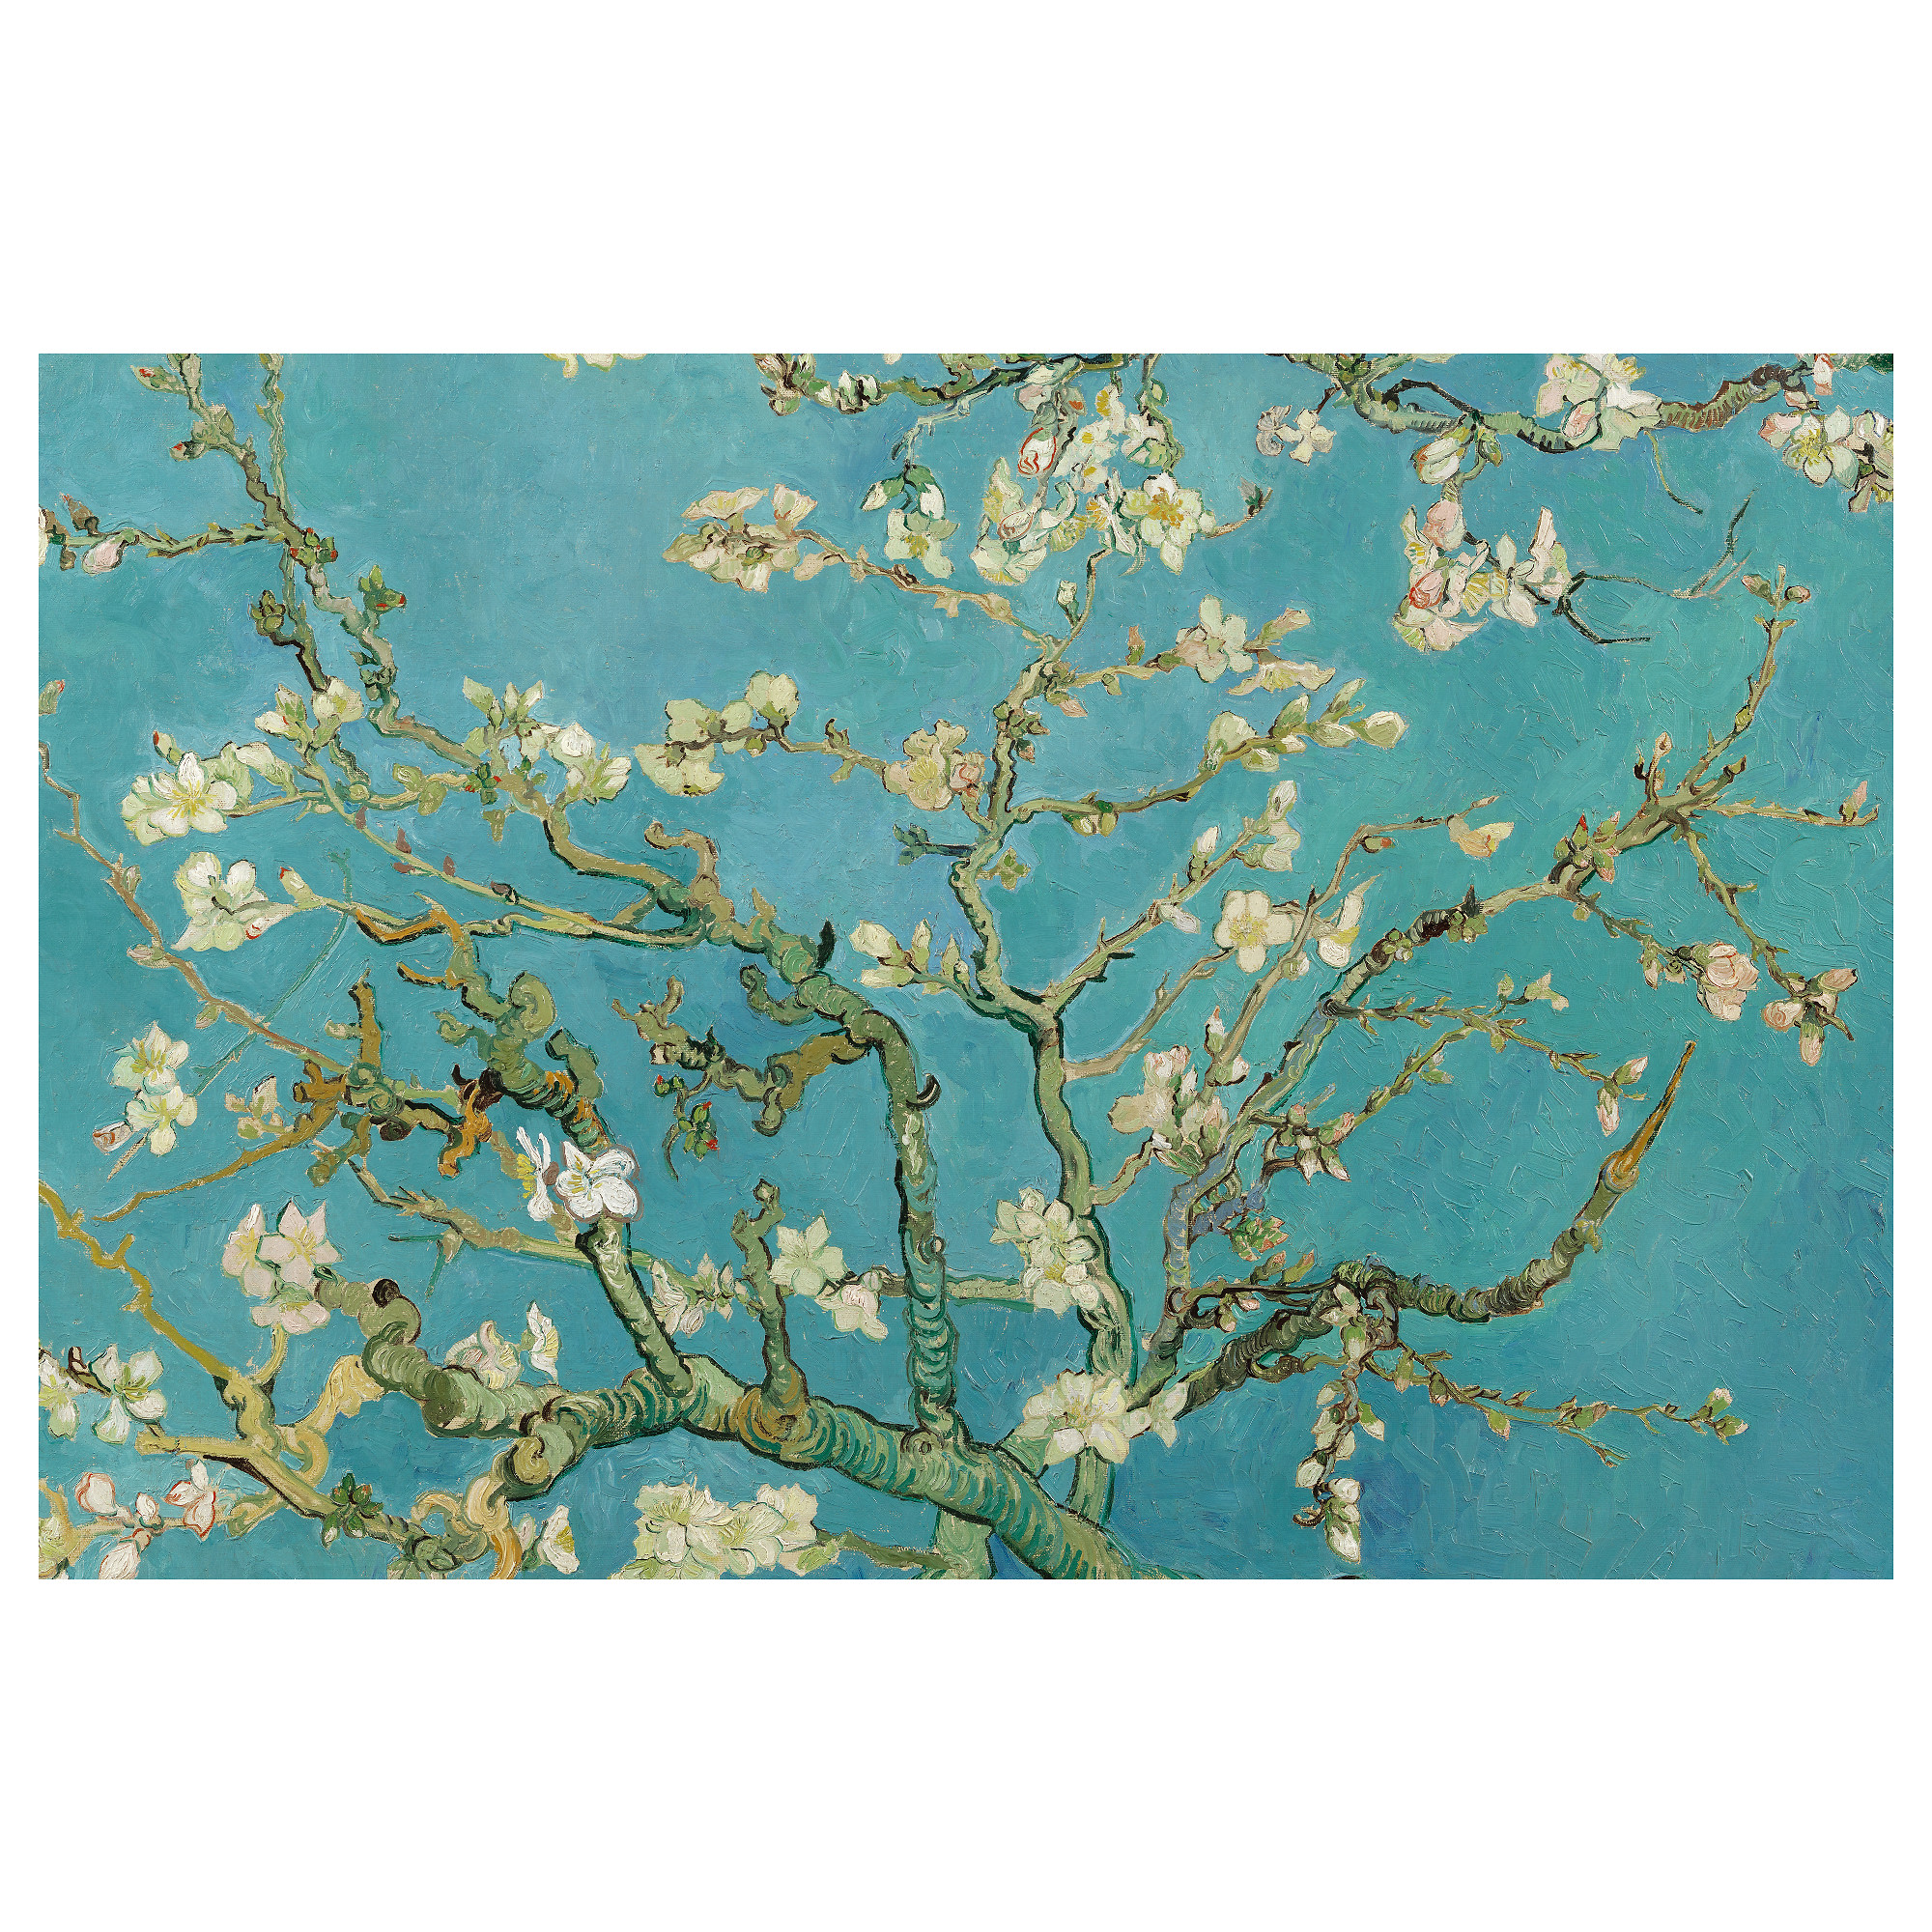 BJÖRKSTA Picture - IKEA for Almond Blossom Van Gogh Poster  55nar